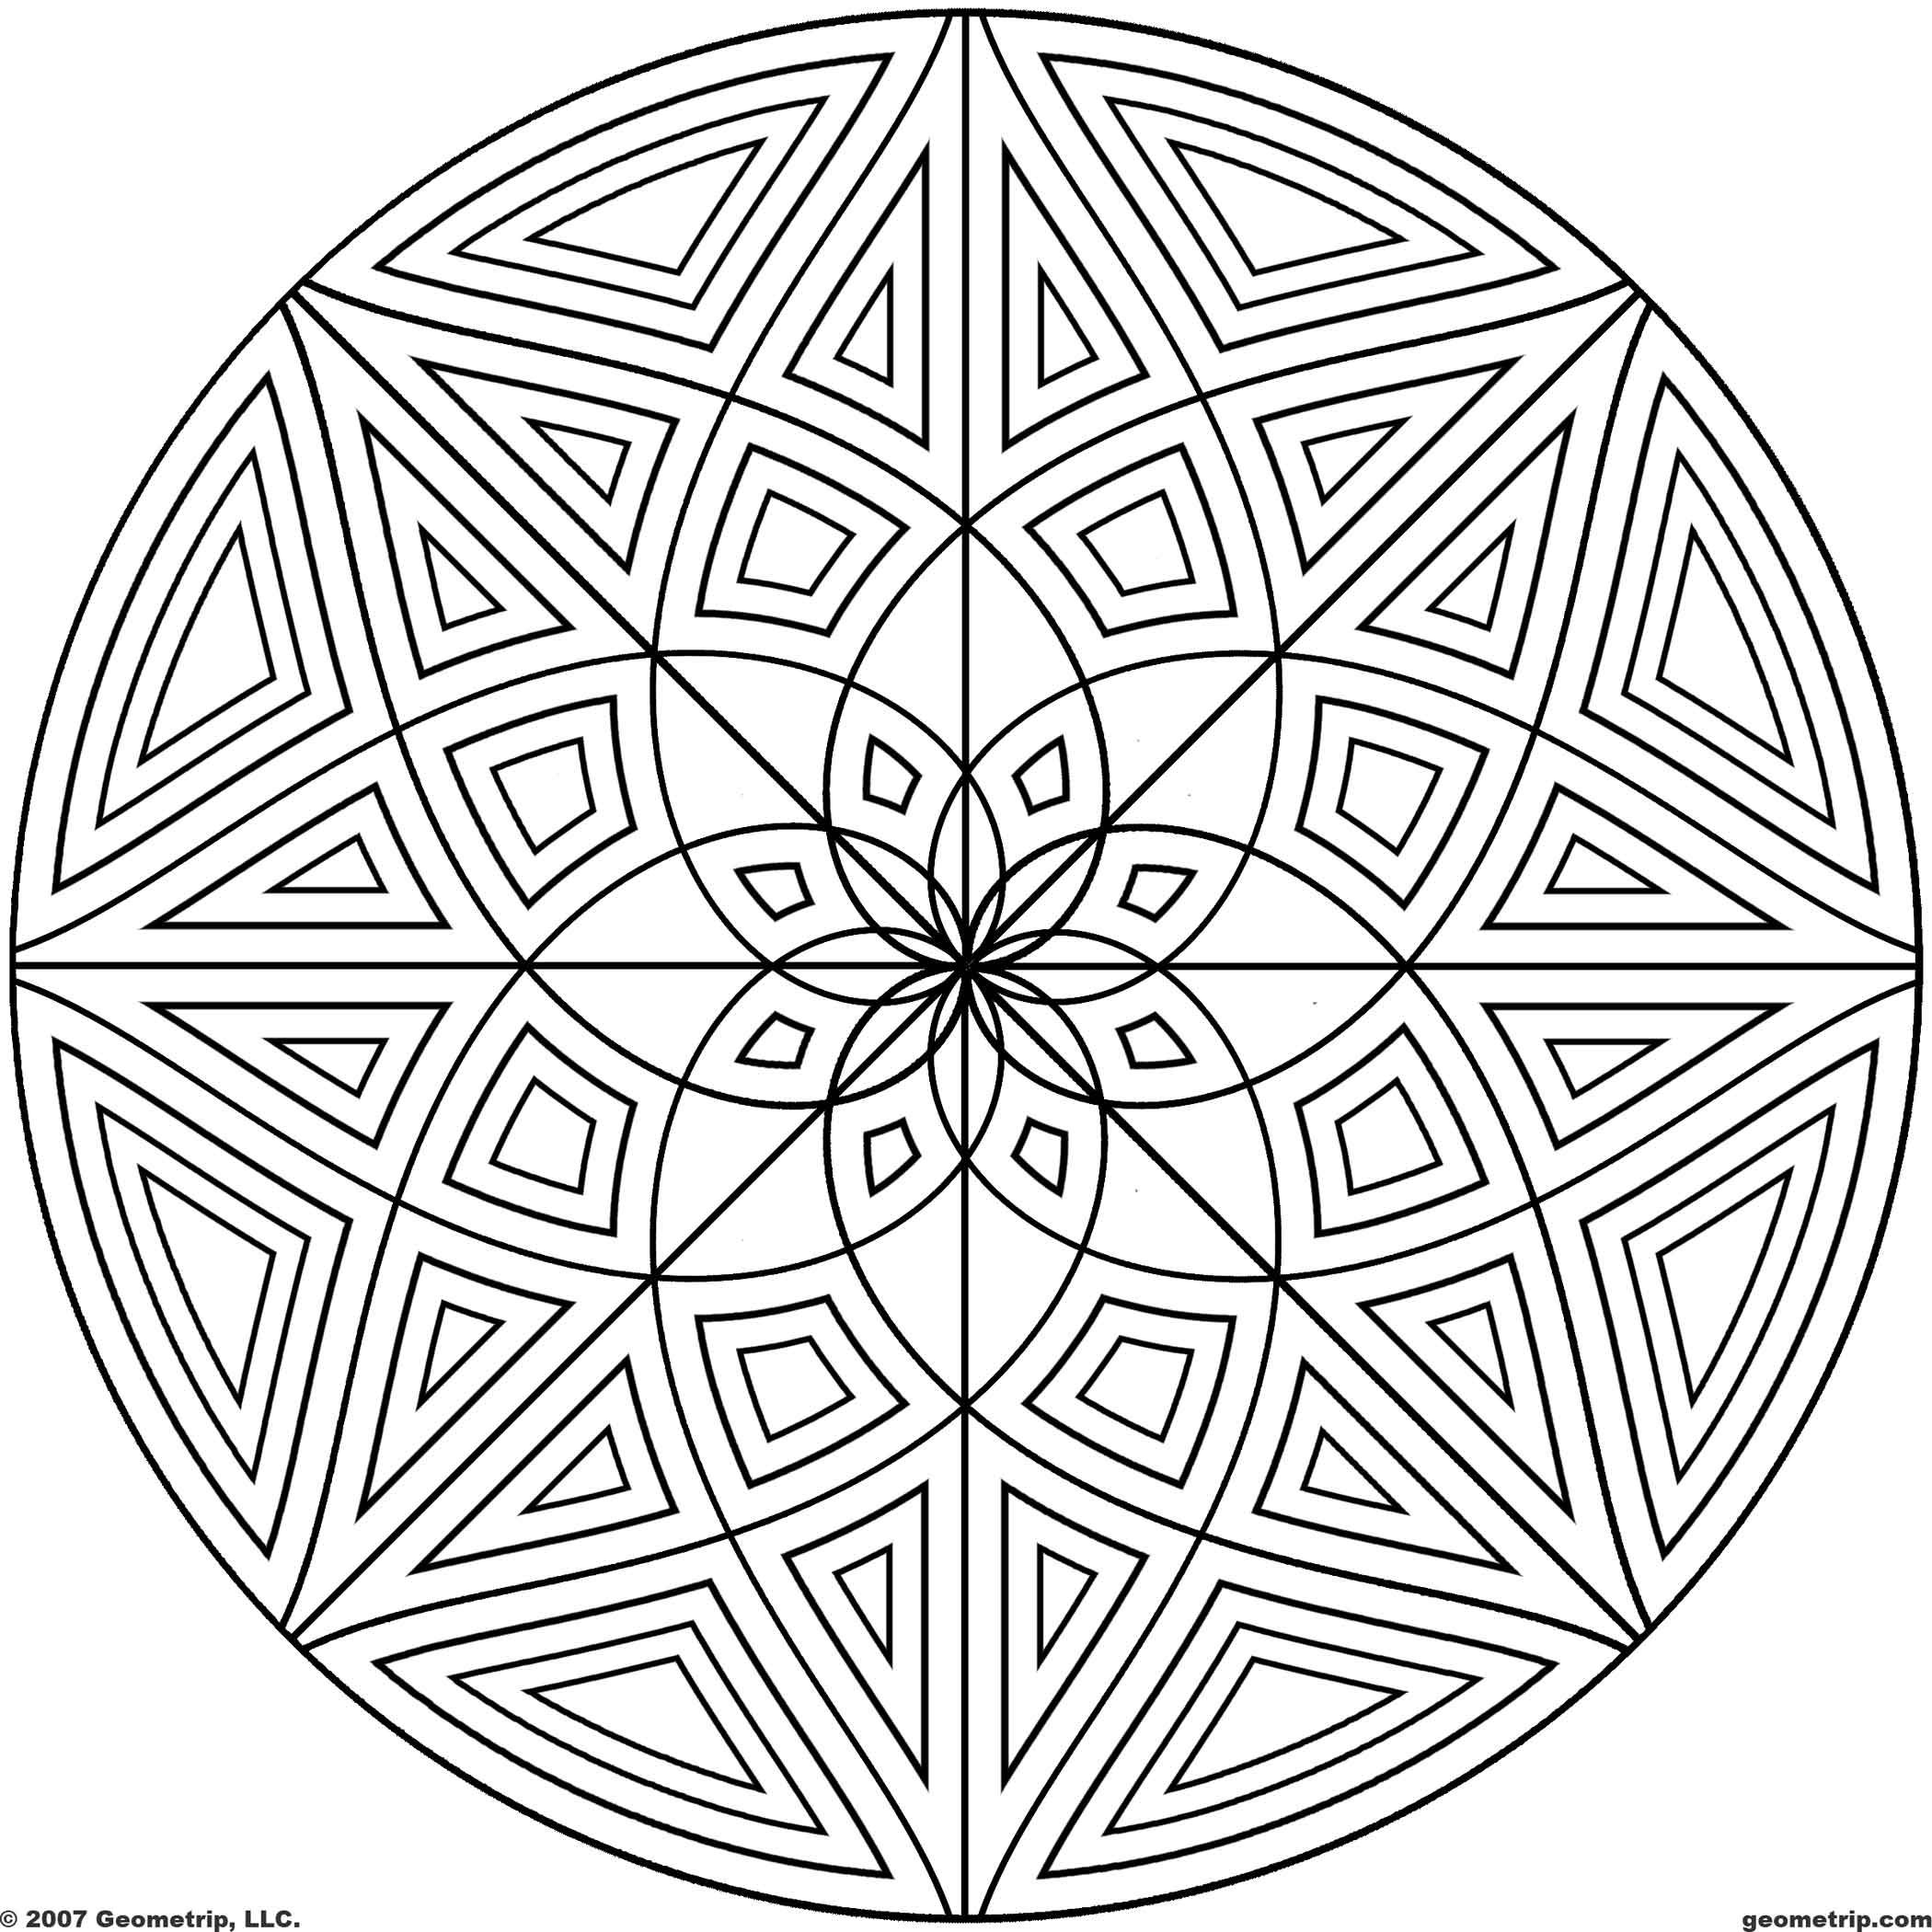 free coloring pages geometric designs coloring pages of cool designs download pdf jpg - Coloring Pages With Designs